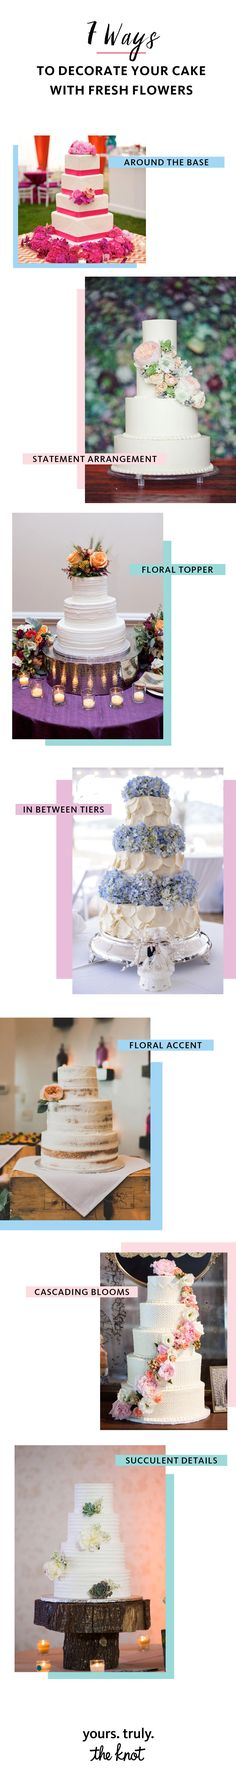 7 Ways to Decorate Your Wedding Cake Beautifully With Fresh Flowers |